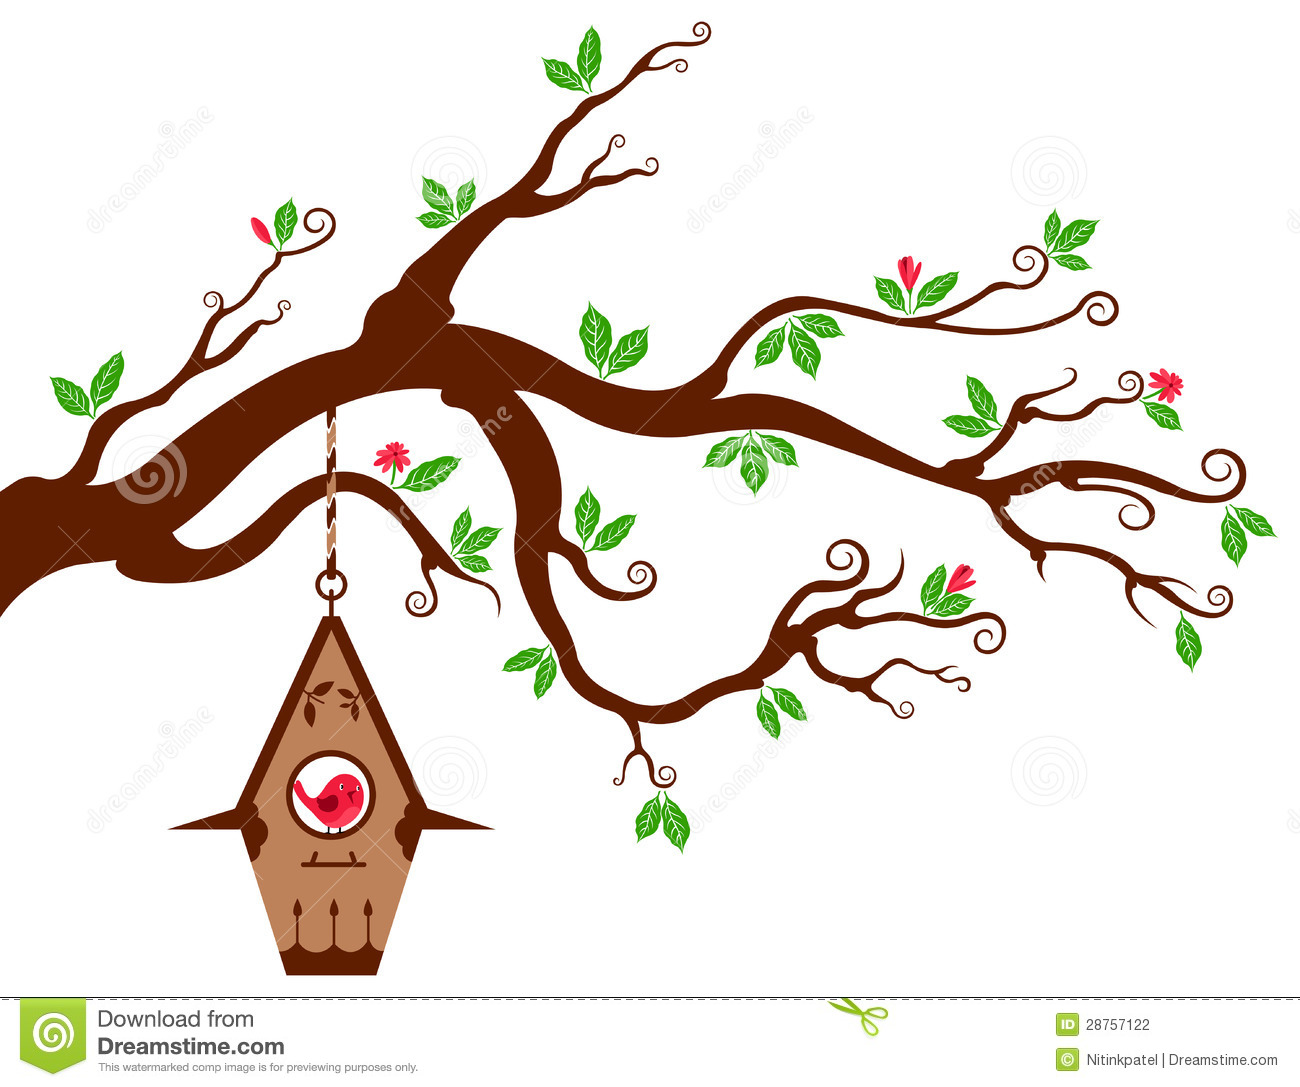 Brds clipart tree house With birdhouse Art Tree Branches